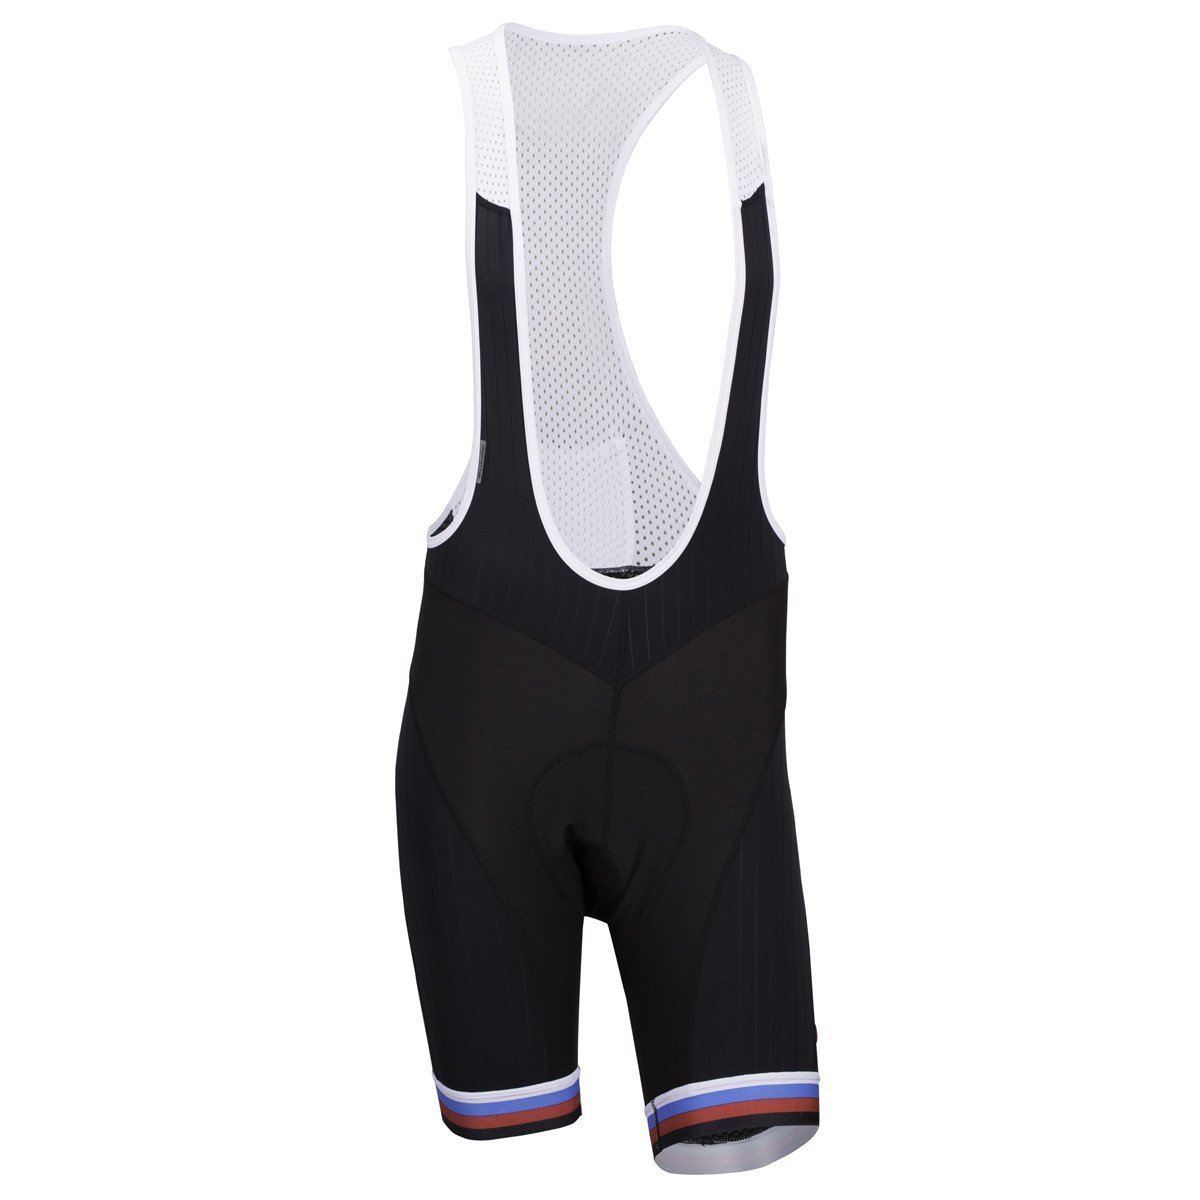 Bellwether 2016 Men's Forza Bib Cycling Shorts - 95697 (Multi - XXL) by Bellwether (Image #1)